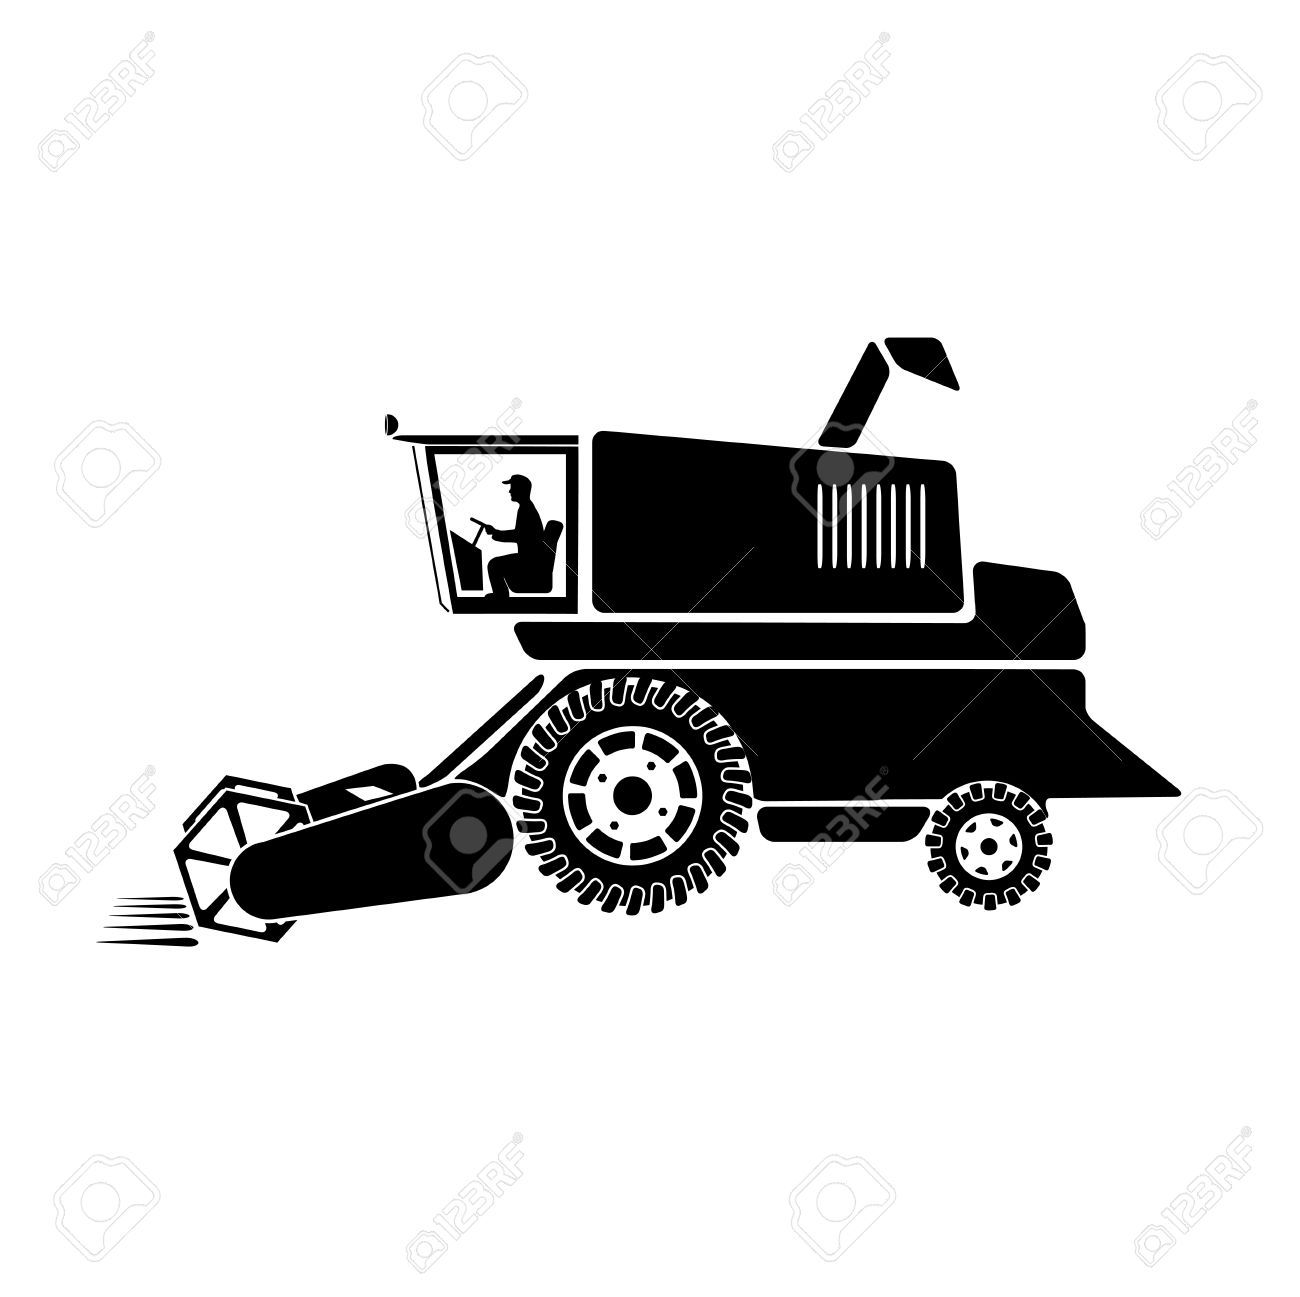 Combine harvester clipart black and white 6 » Clipart Portal.